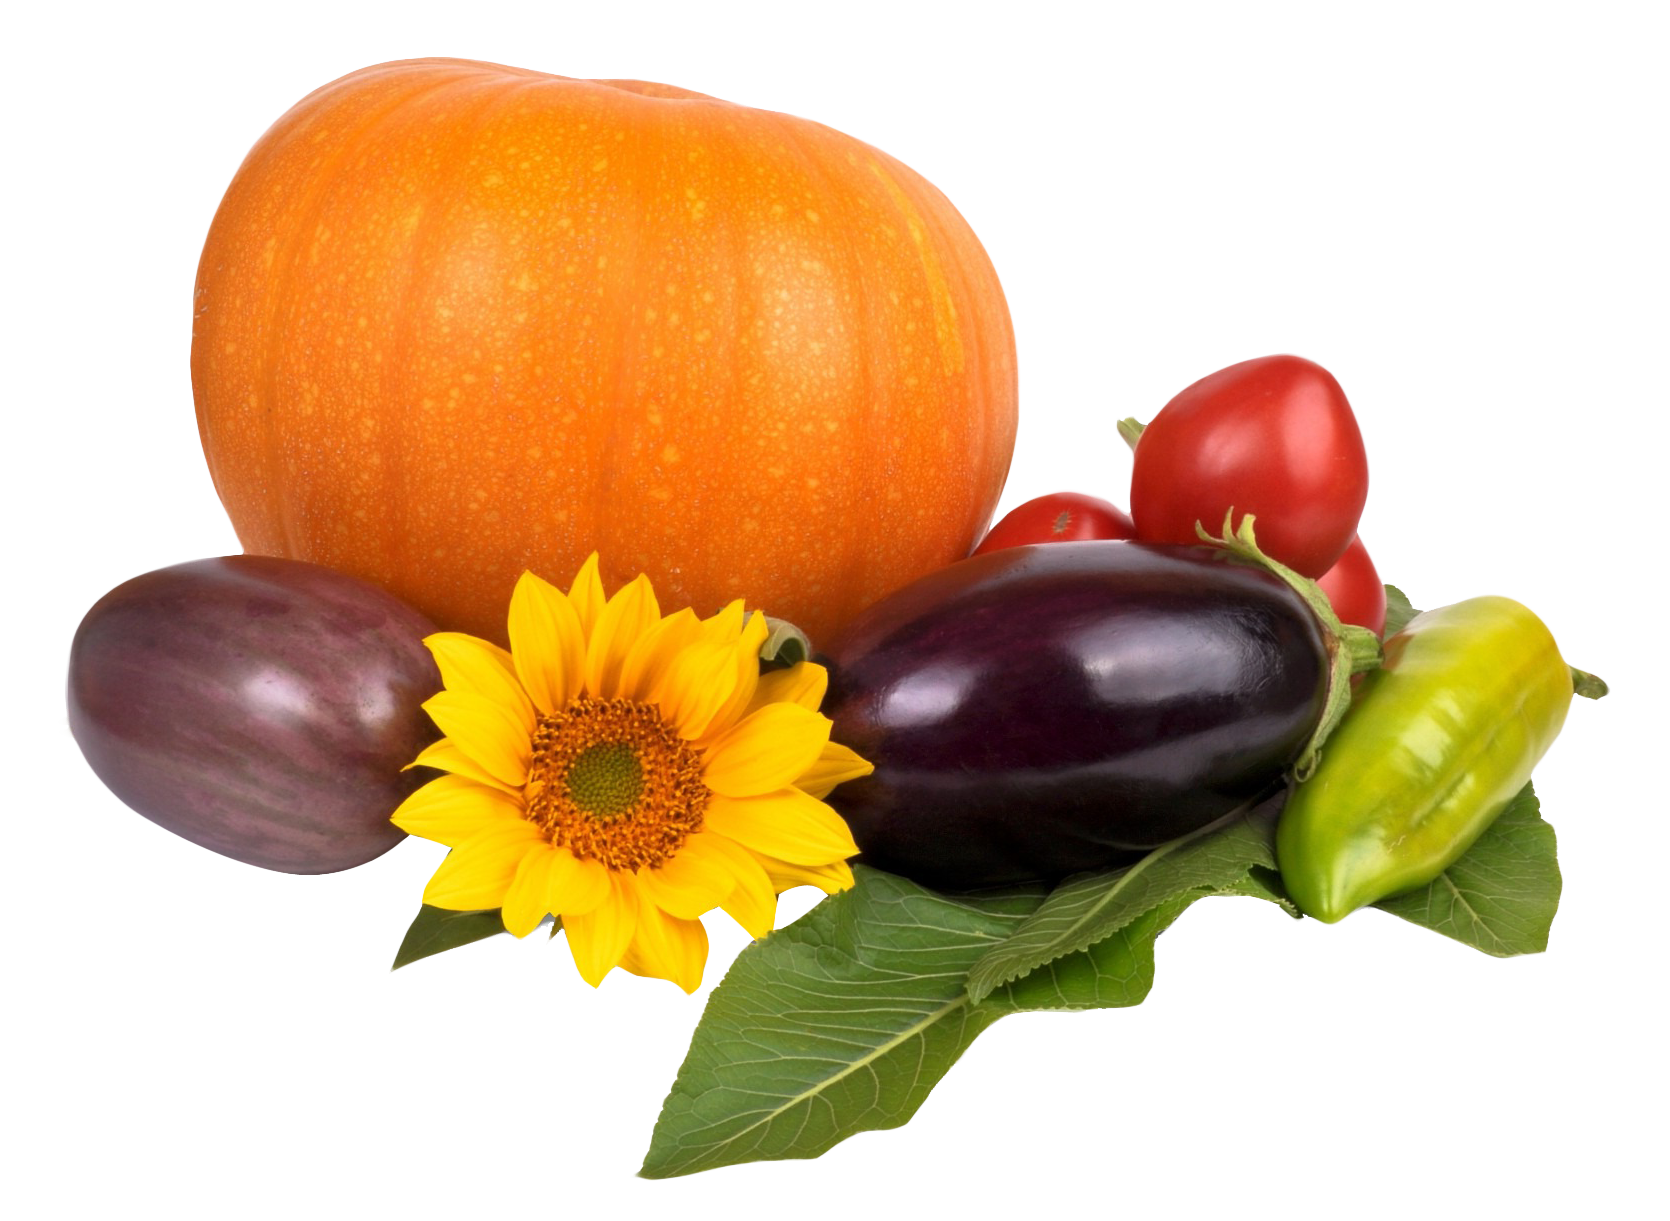 Pumpkin Tomato Pepper Eggplant PNG Image